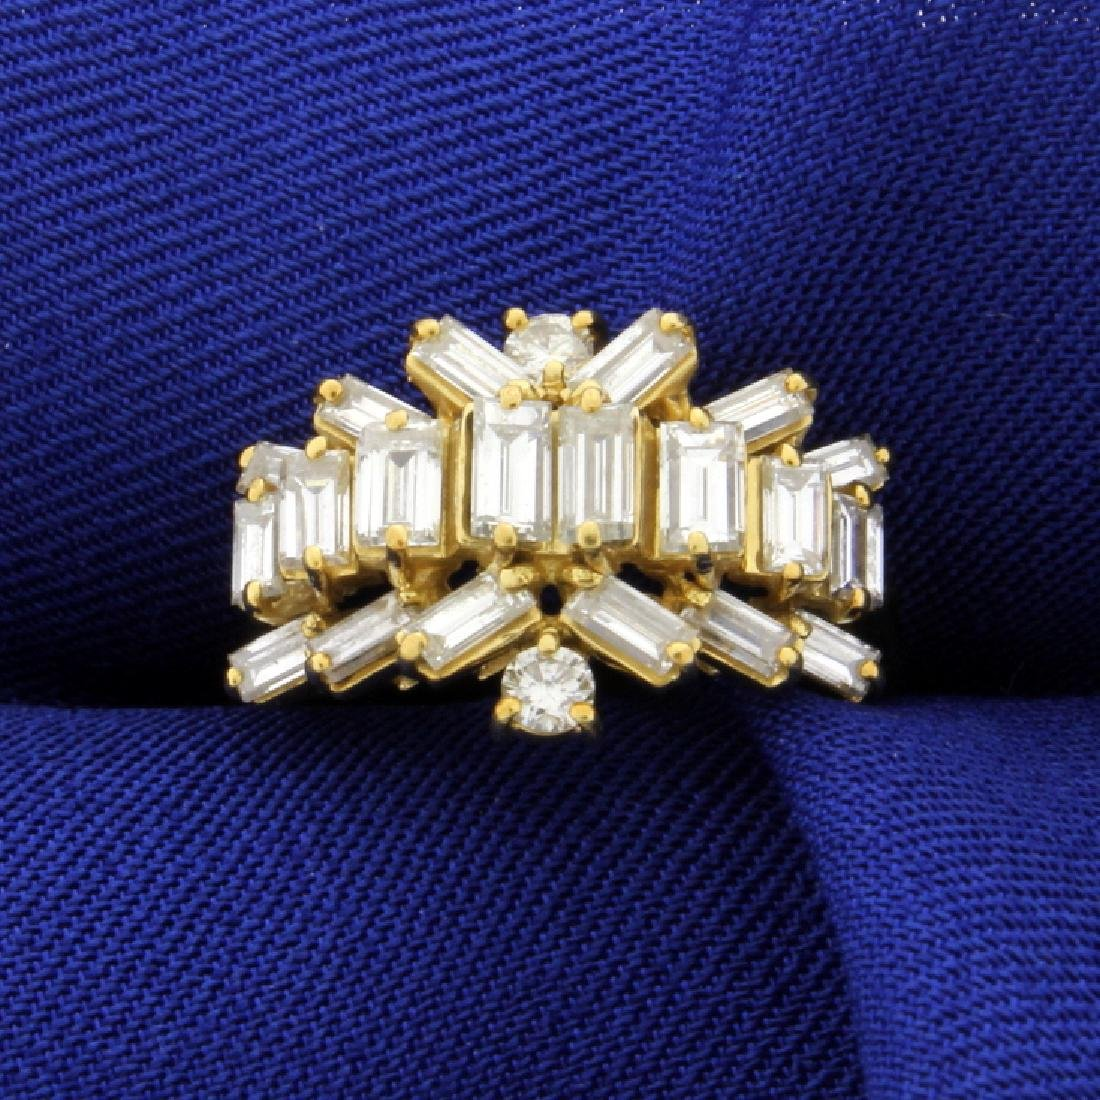 2 1/2ct Total Weight Diamond Ring in 18K